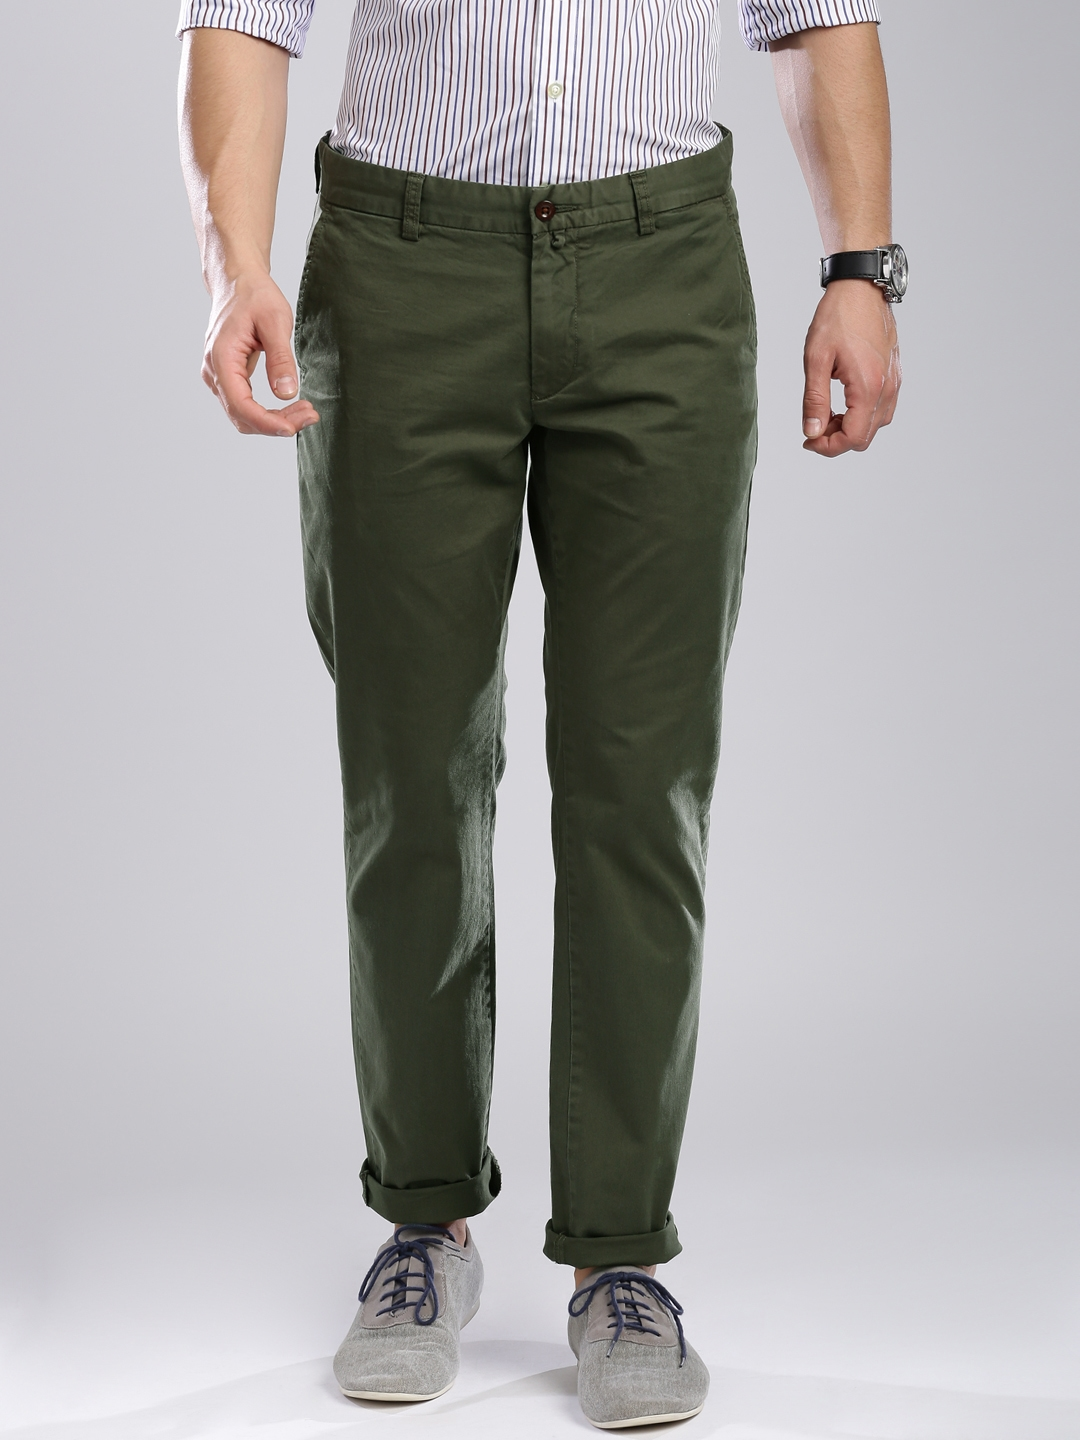 a4d65fcd63b6 Buy GANT Olive Green Soho Fit Chino Trousers - Trousers for Men ...